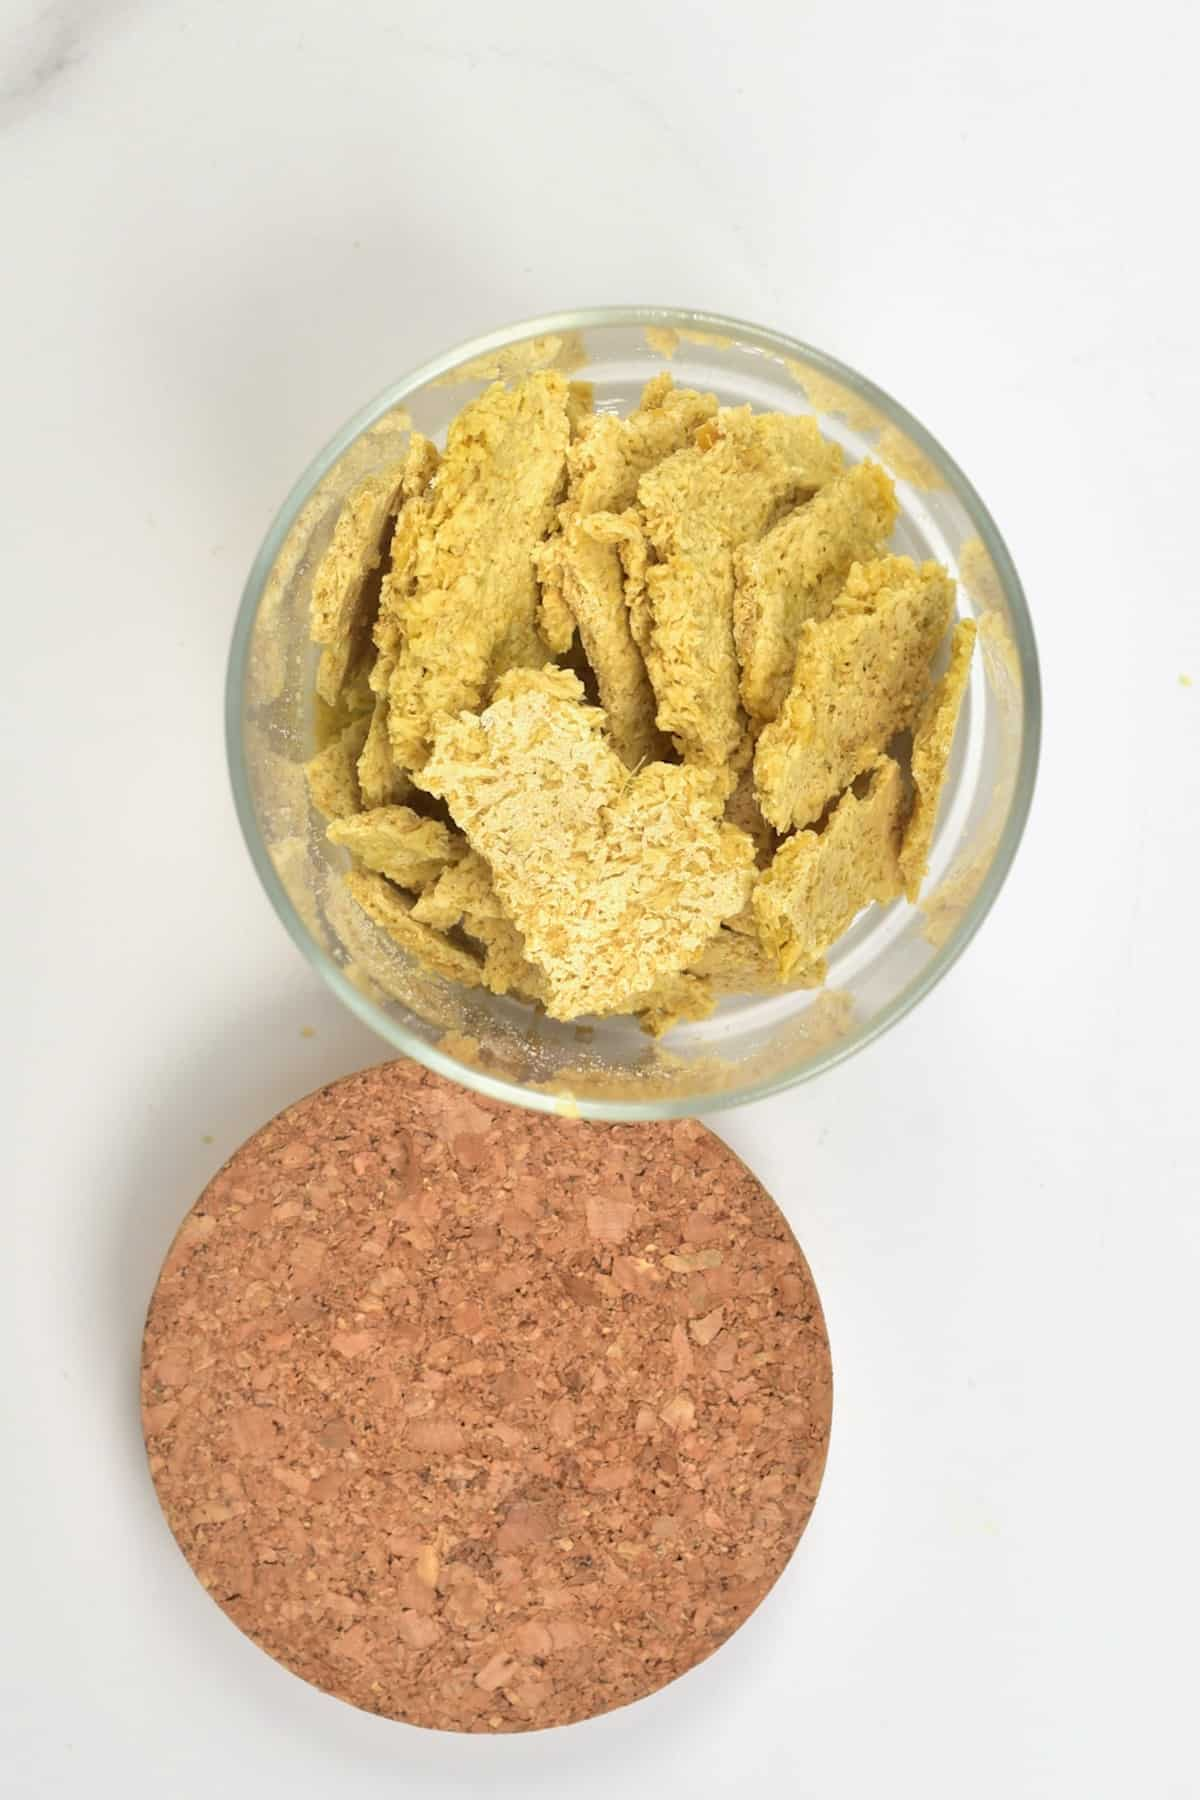 Ginger sugar cookines in a container